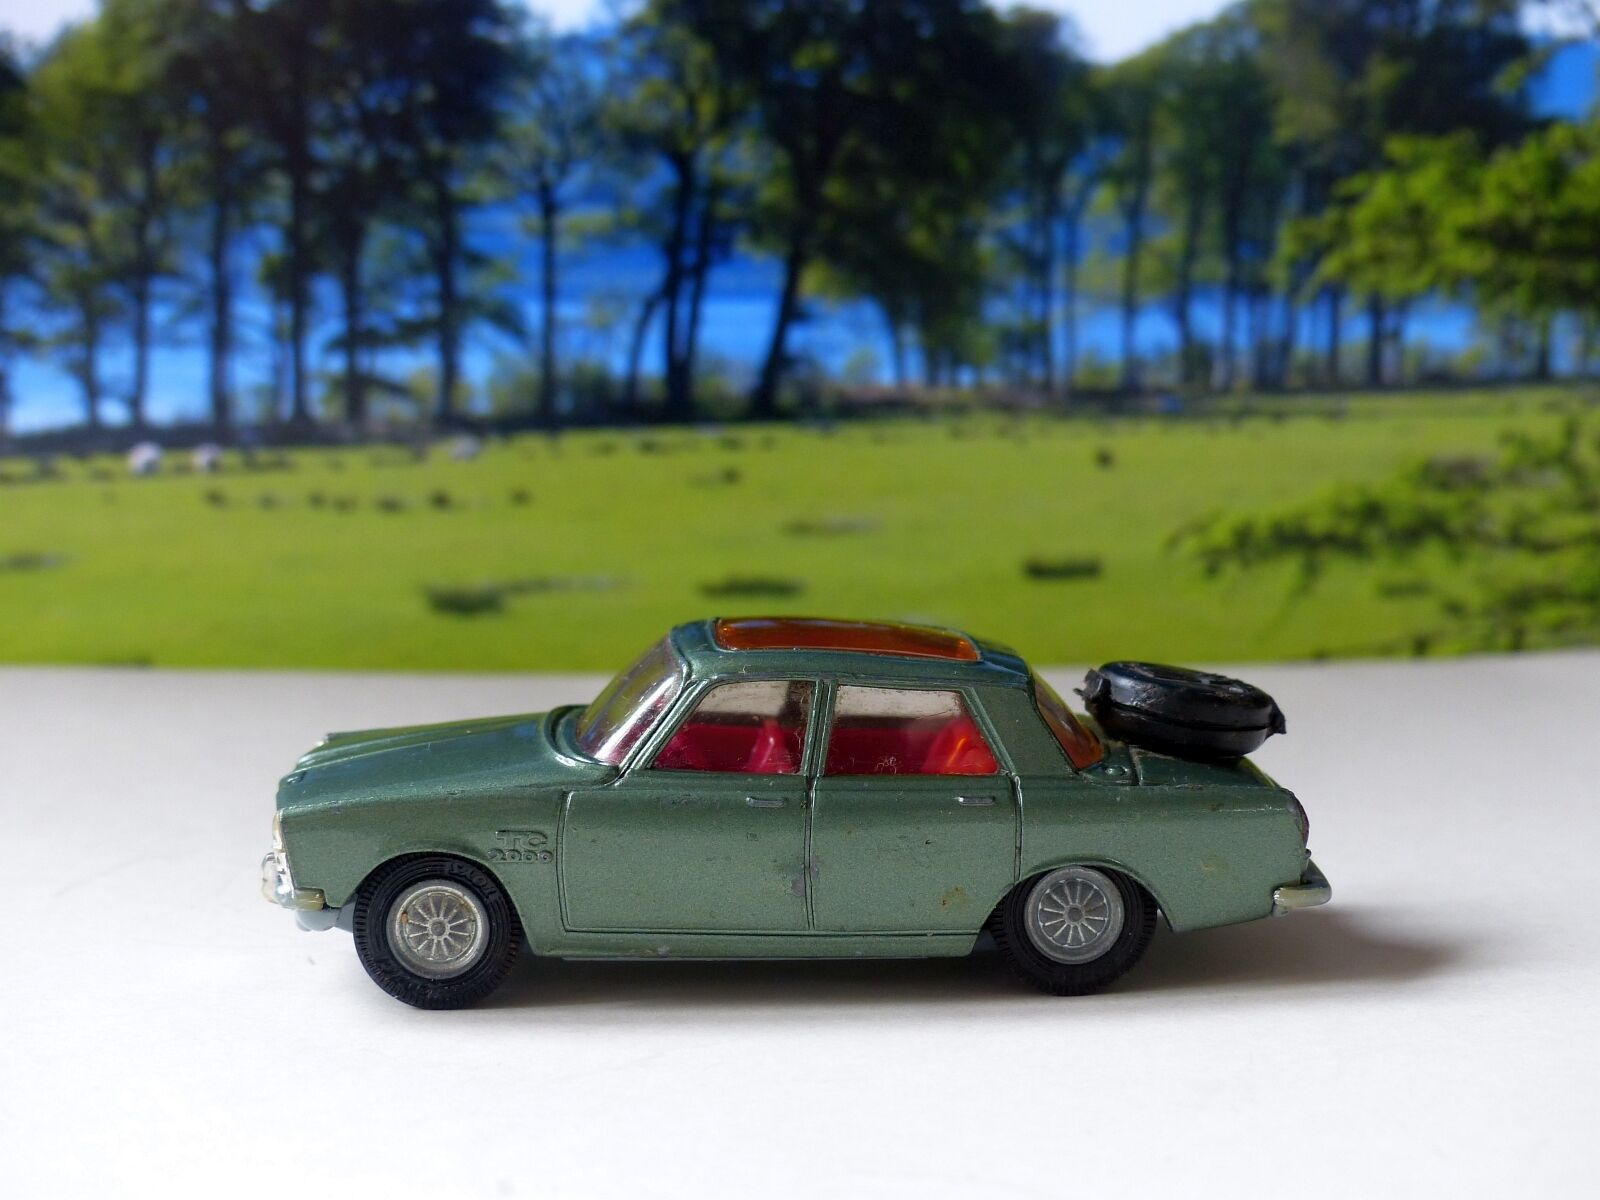 Corgi Toys 275 Rover 2000TC in green with red interior